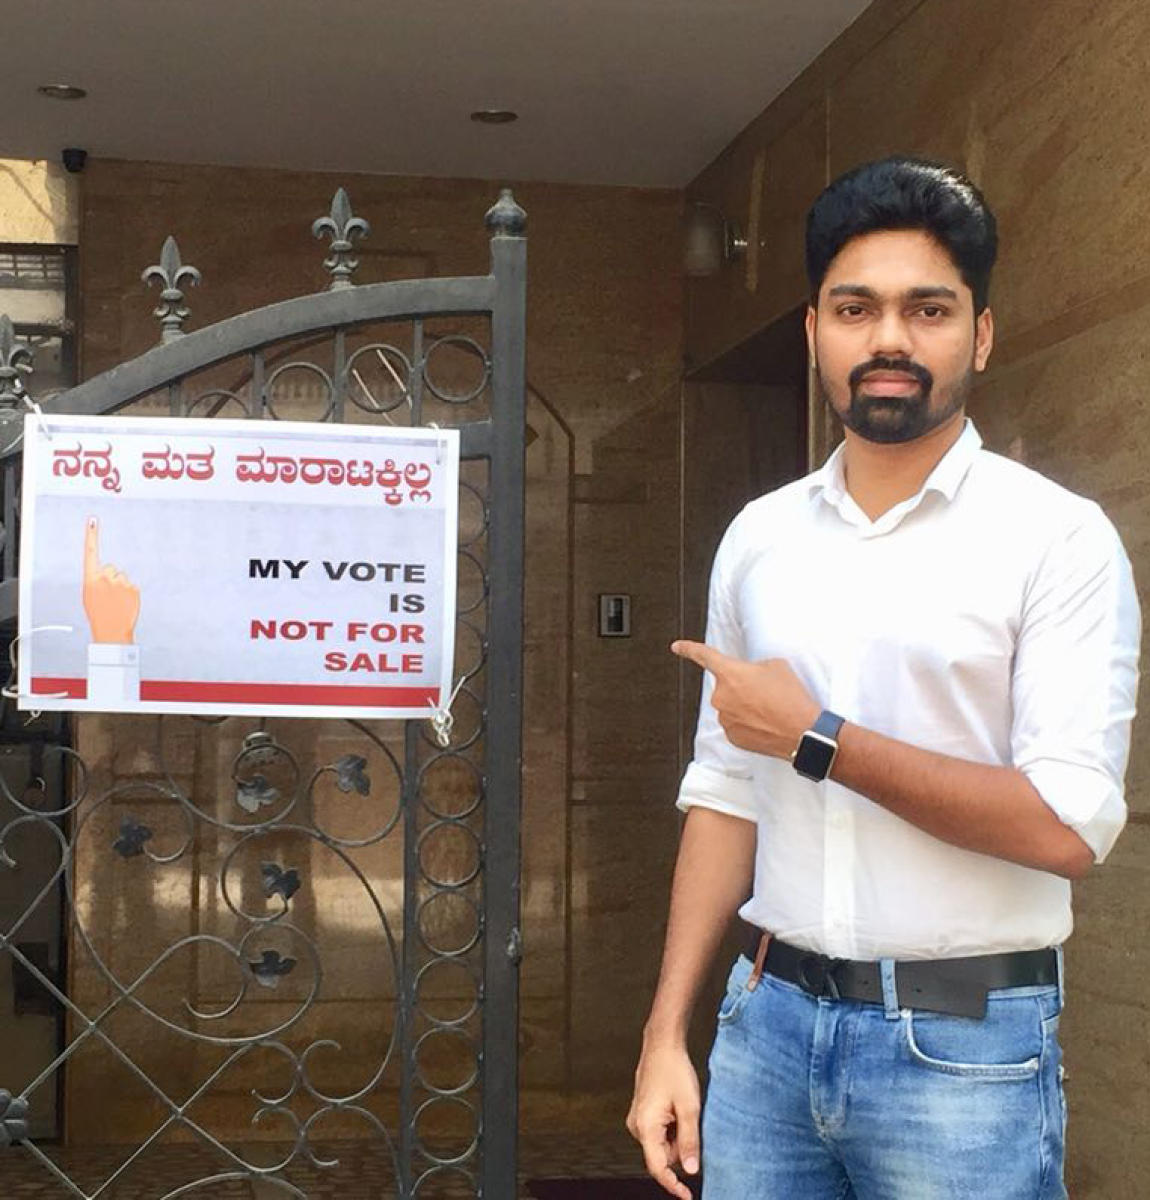 'My vote is not for sale' campaign in city